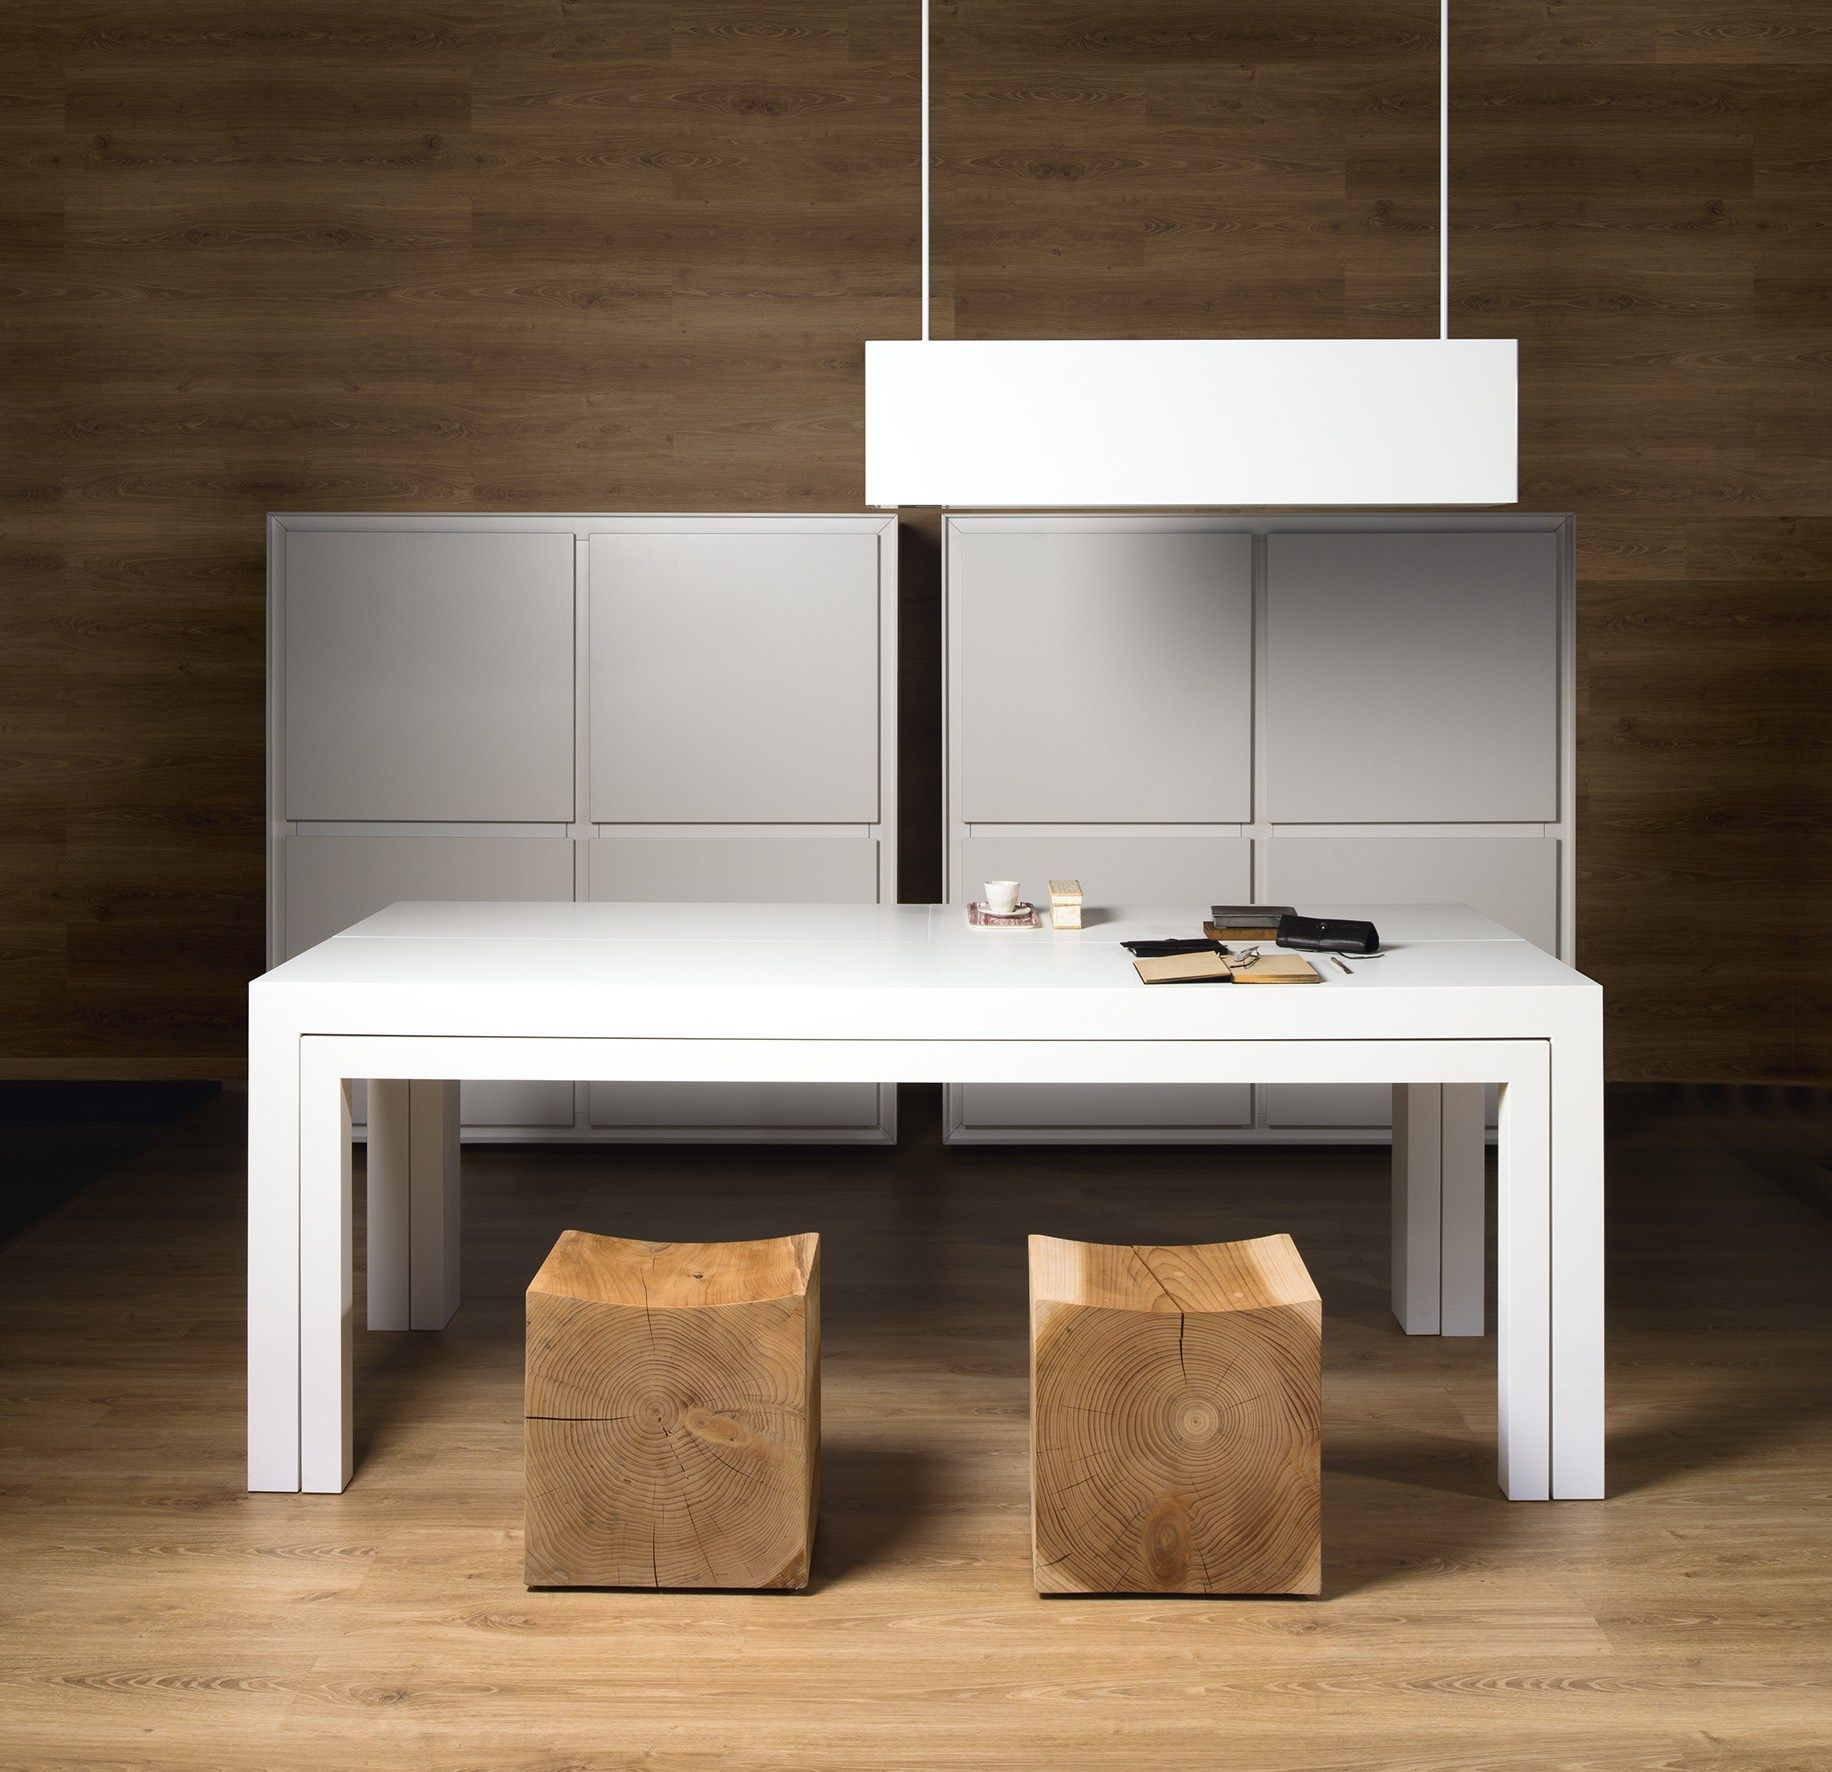 Minicucina in legno OFF KITCHEN by TM Italia Cucine design Daniele ...